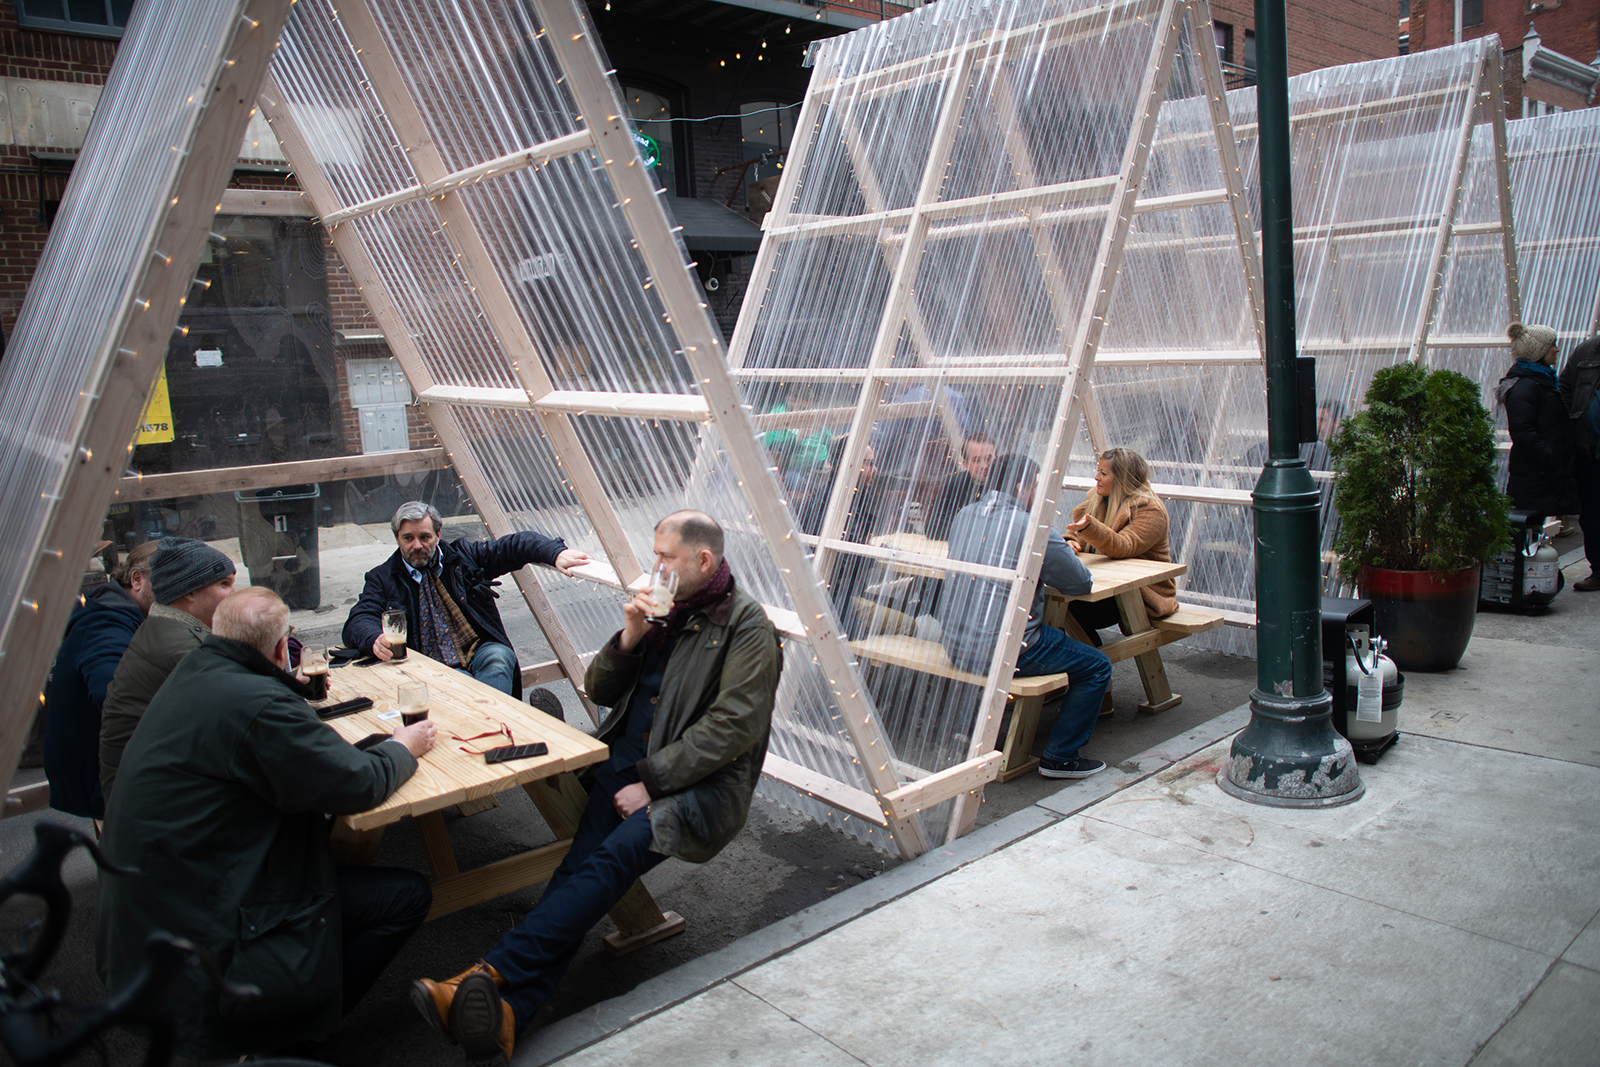 Patrons drink beer outside Fergie's Pub within plexiglass enclosures on St. Patrick's Day on March 17, in Philadelphia.